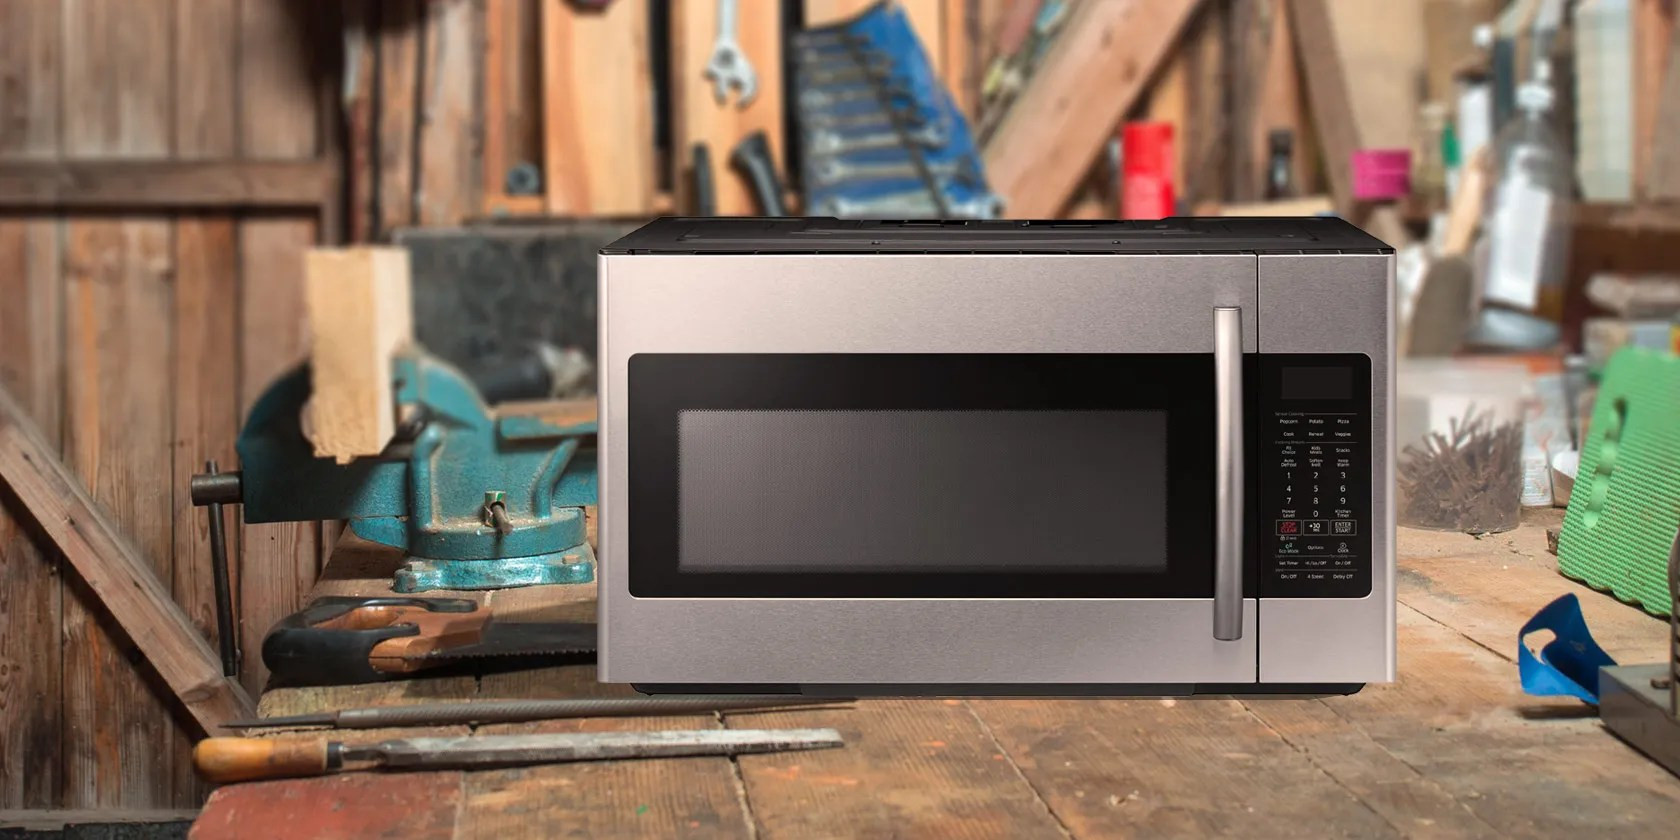 how to safely take apart a microwave